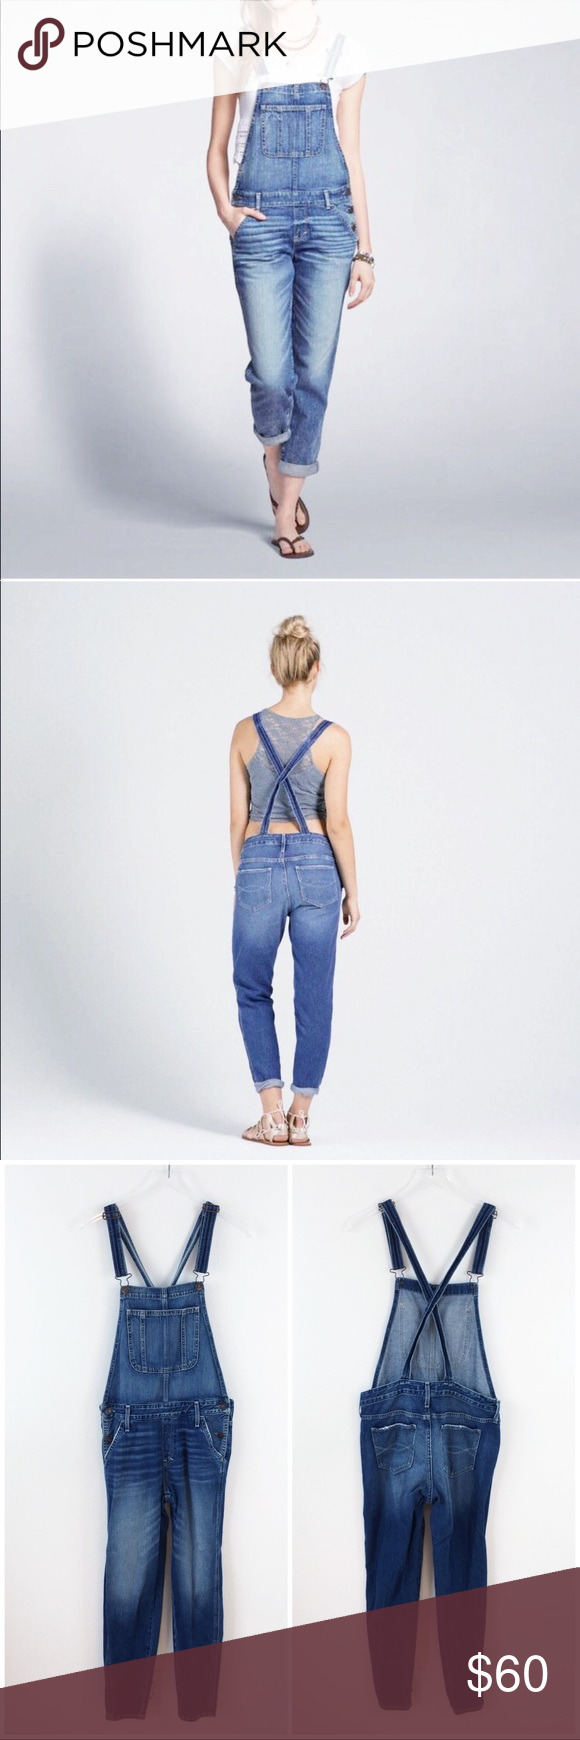 f55714f2723 Abercrombie   Fitch Allie Boyfriend Overalls These Abercrombie   Fitch  Denim Jean Allie Boyfriend Overalls feature